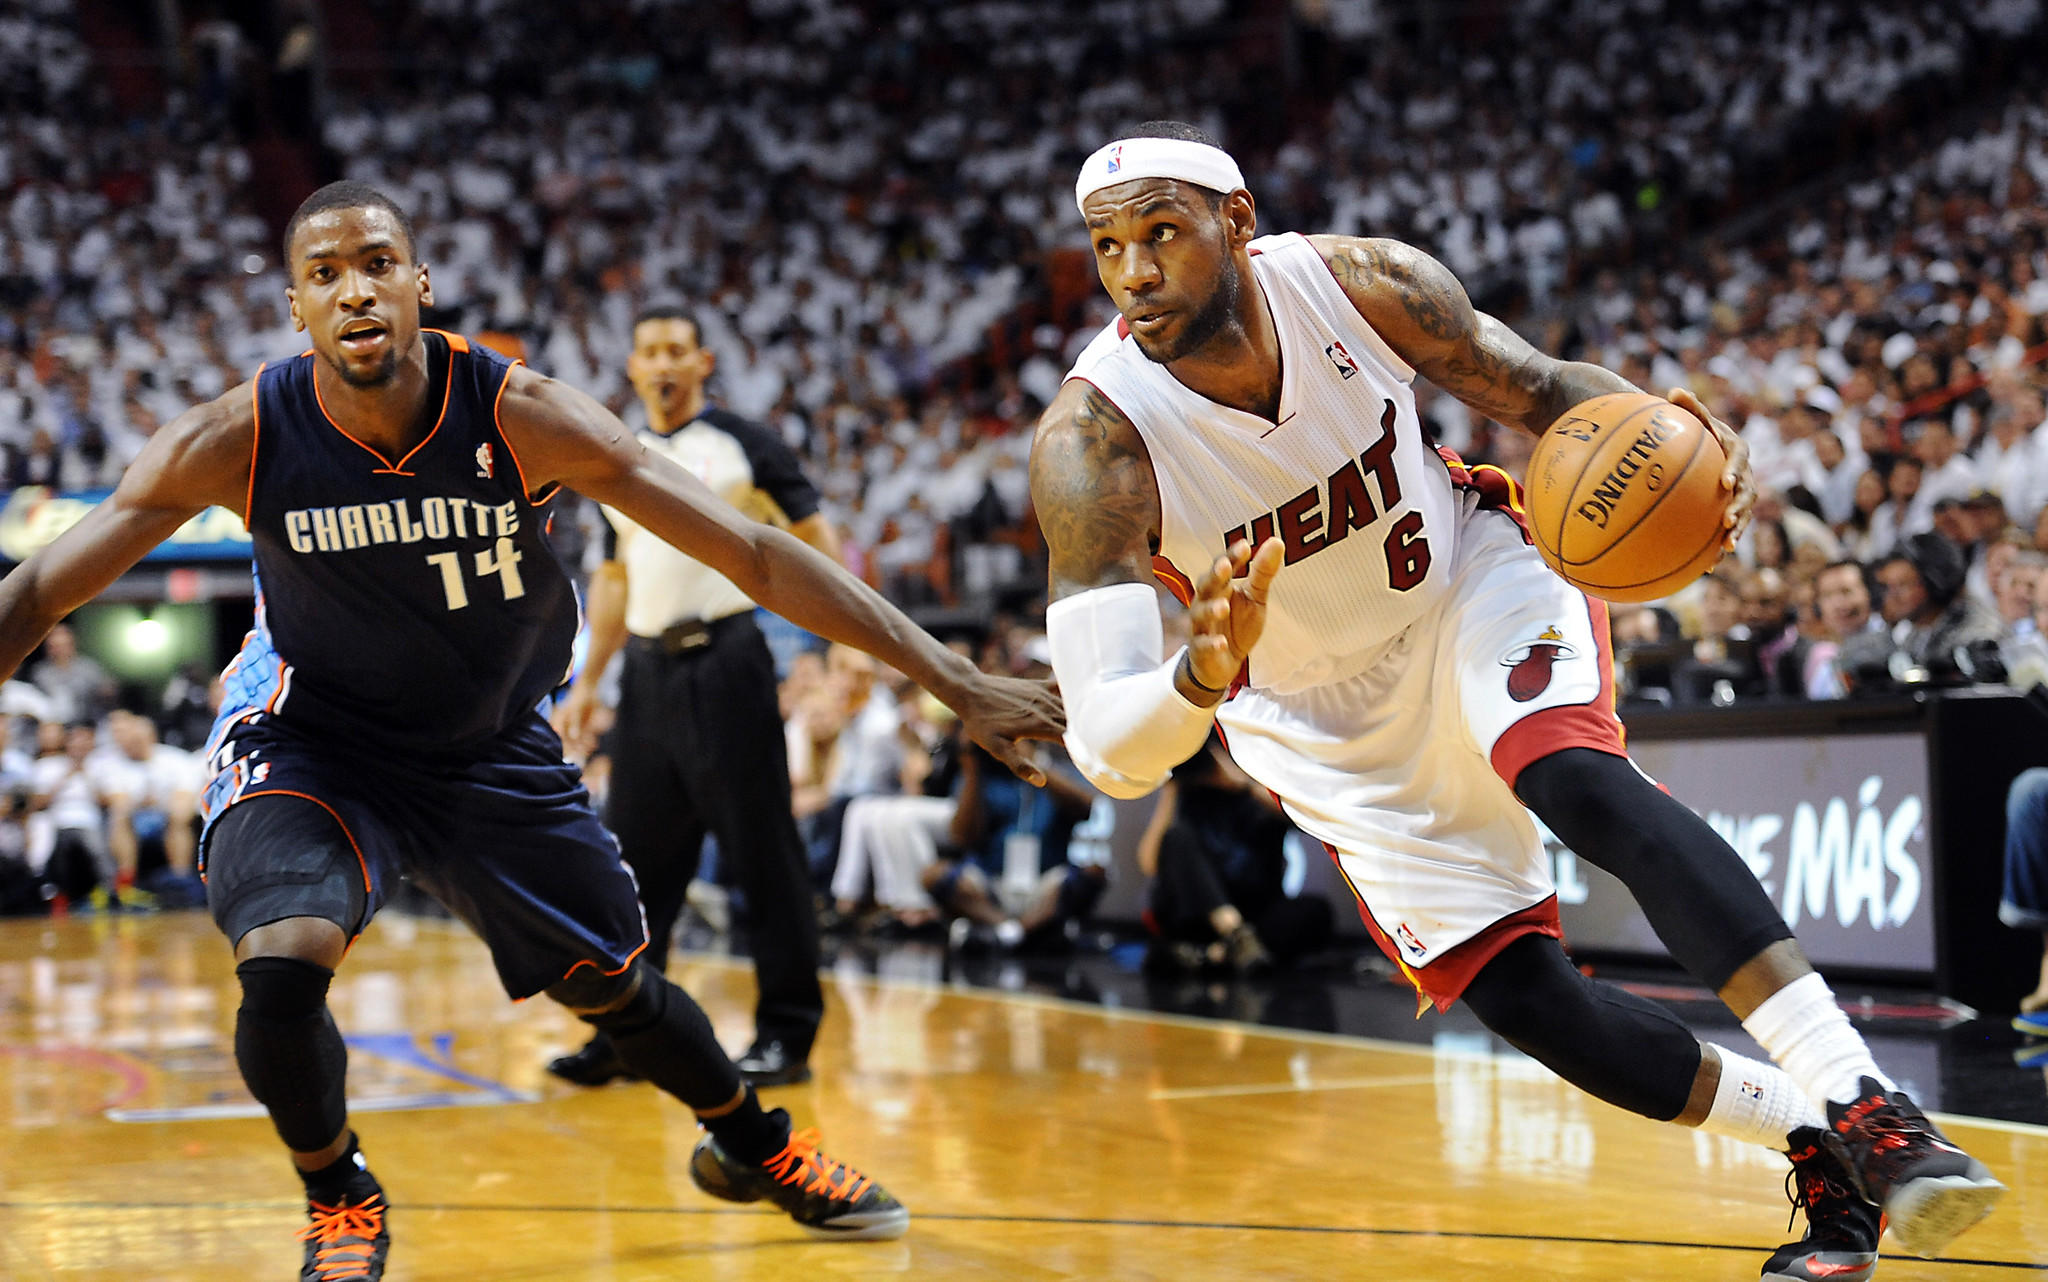 LeBron James blows past Charlotte's Michael Kidd-Gilchrist. The Miami Heat host the Charlotte Bobcats at American Airlines Arena for game two of the opening round of the NBA playoffs.